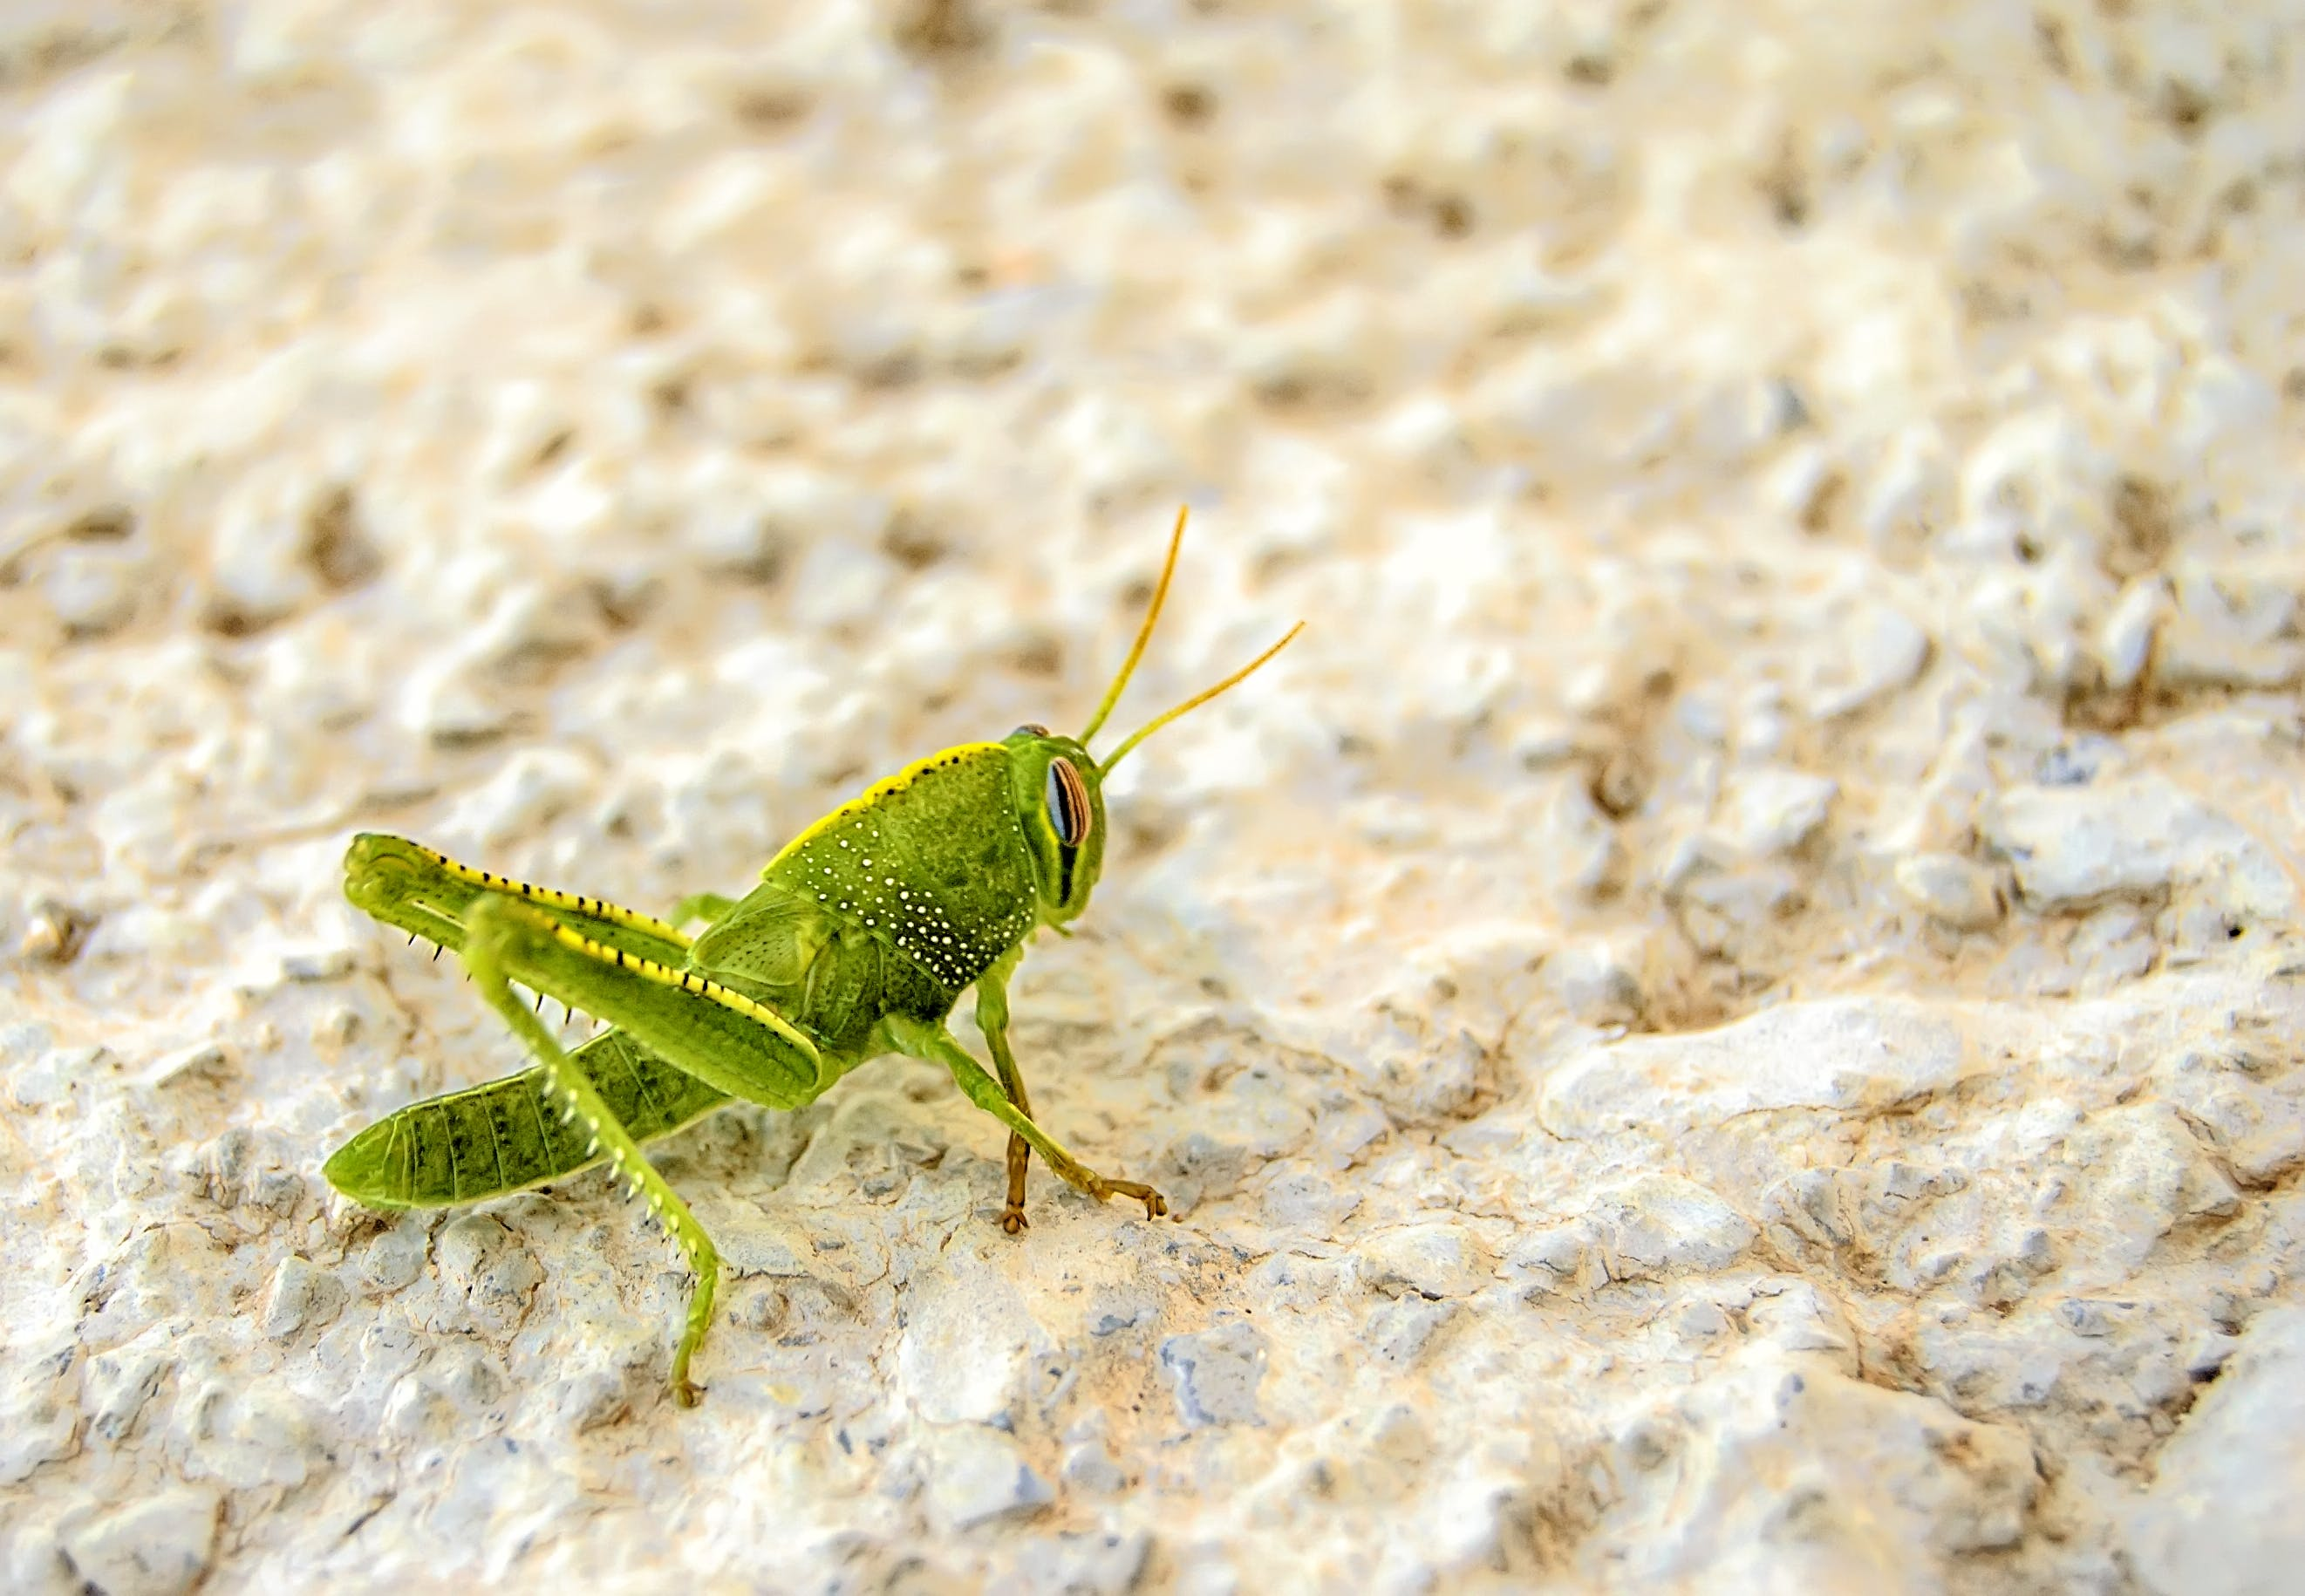 Green Grasshopper on White Surface